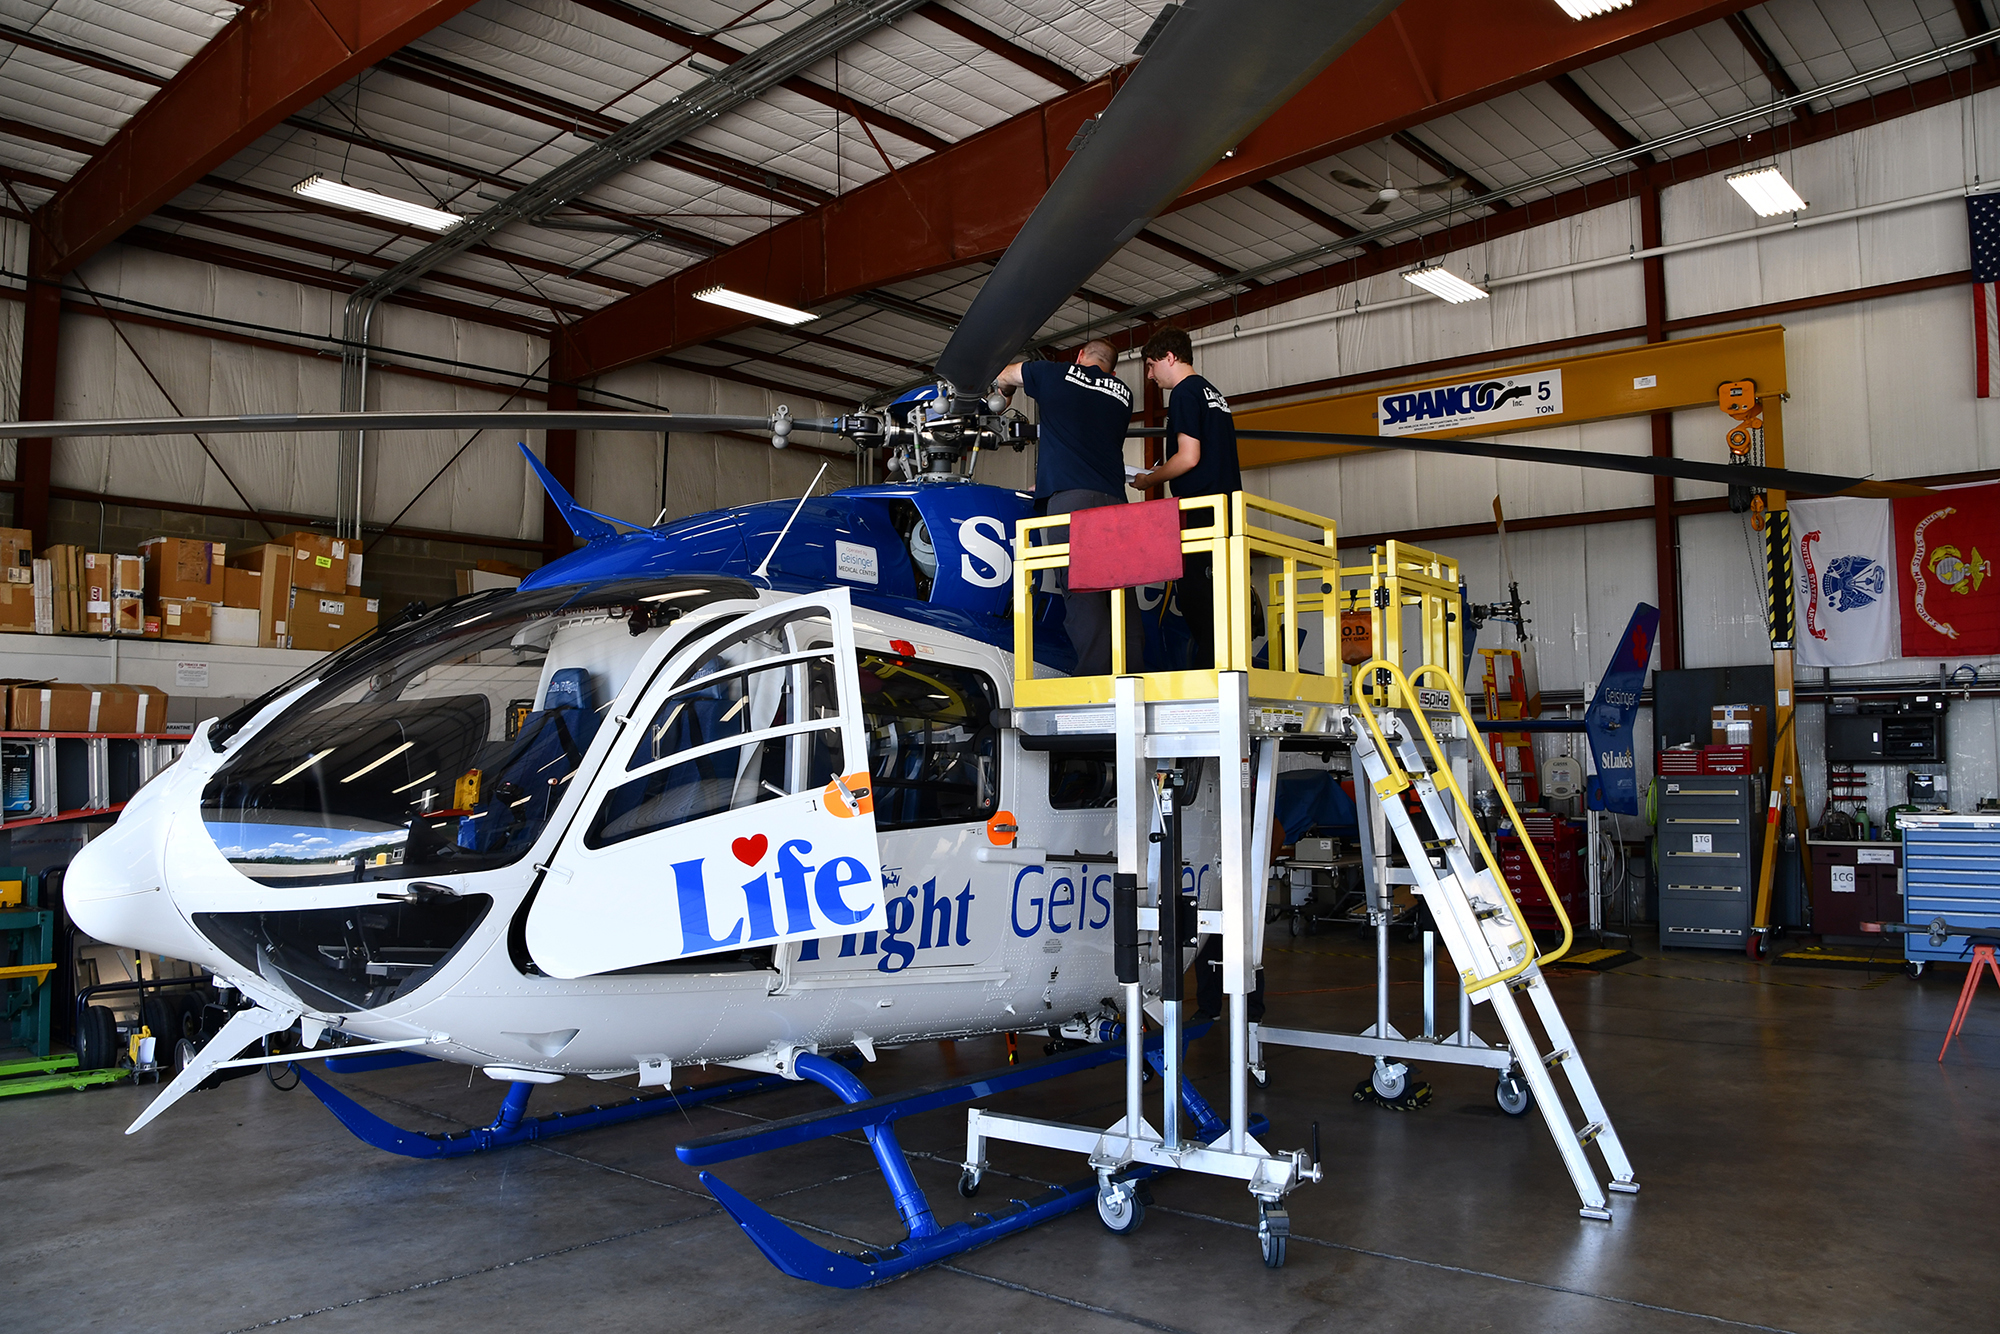 Geisinger Life Flight - Eurocopter EC145 Helicopter Maintenance